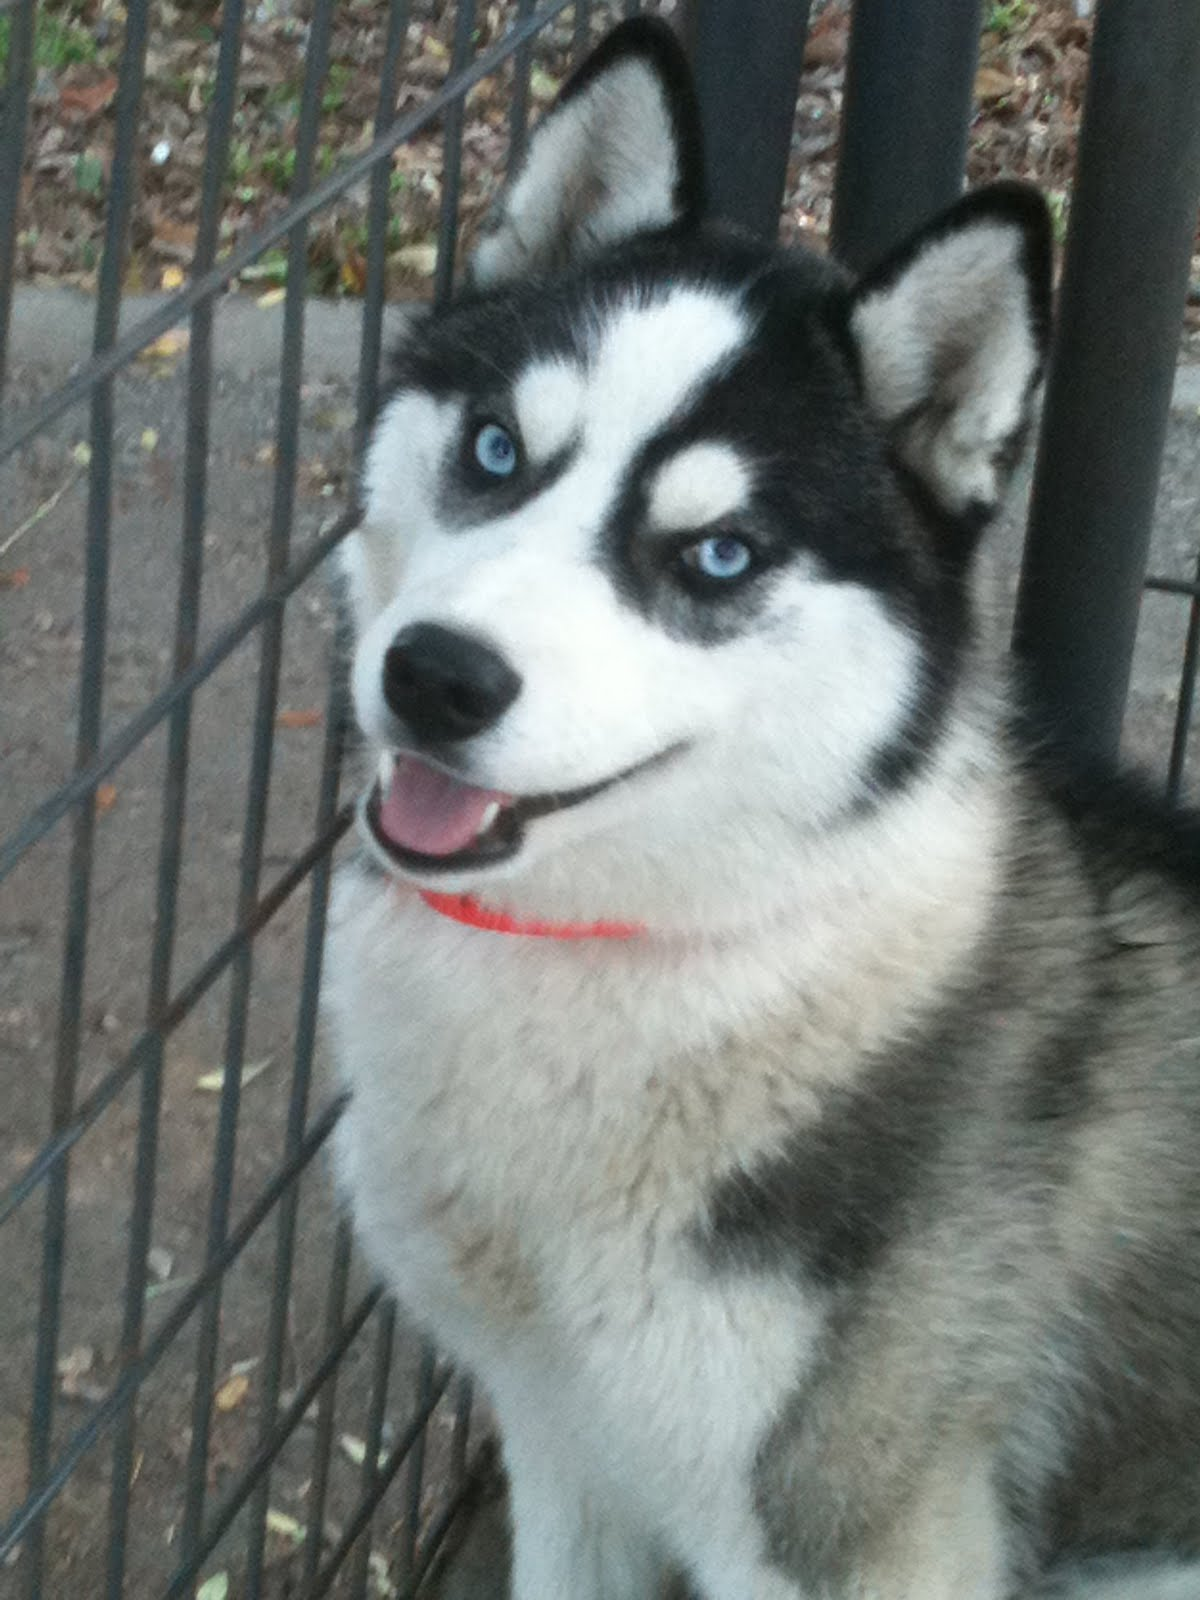 Husky puppies for adoption in california - Two Huskies Missing In Fresno Ca Stormy Gray White Female And Carmen Black White Female Please Contact Both Dogs Are Safe And Sound At Home With Any